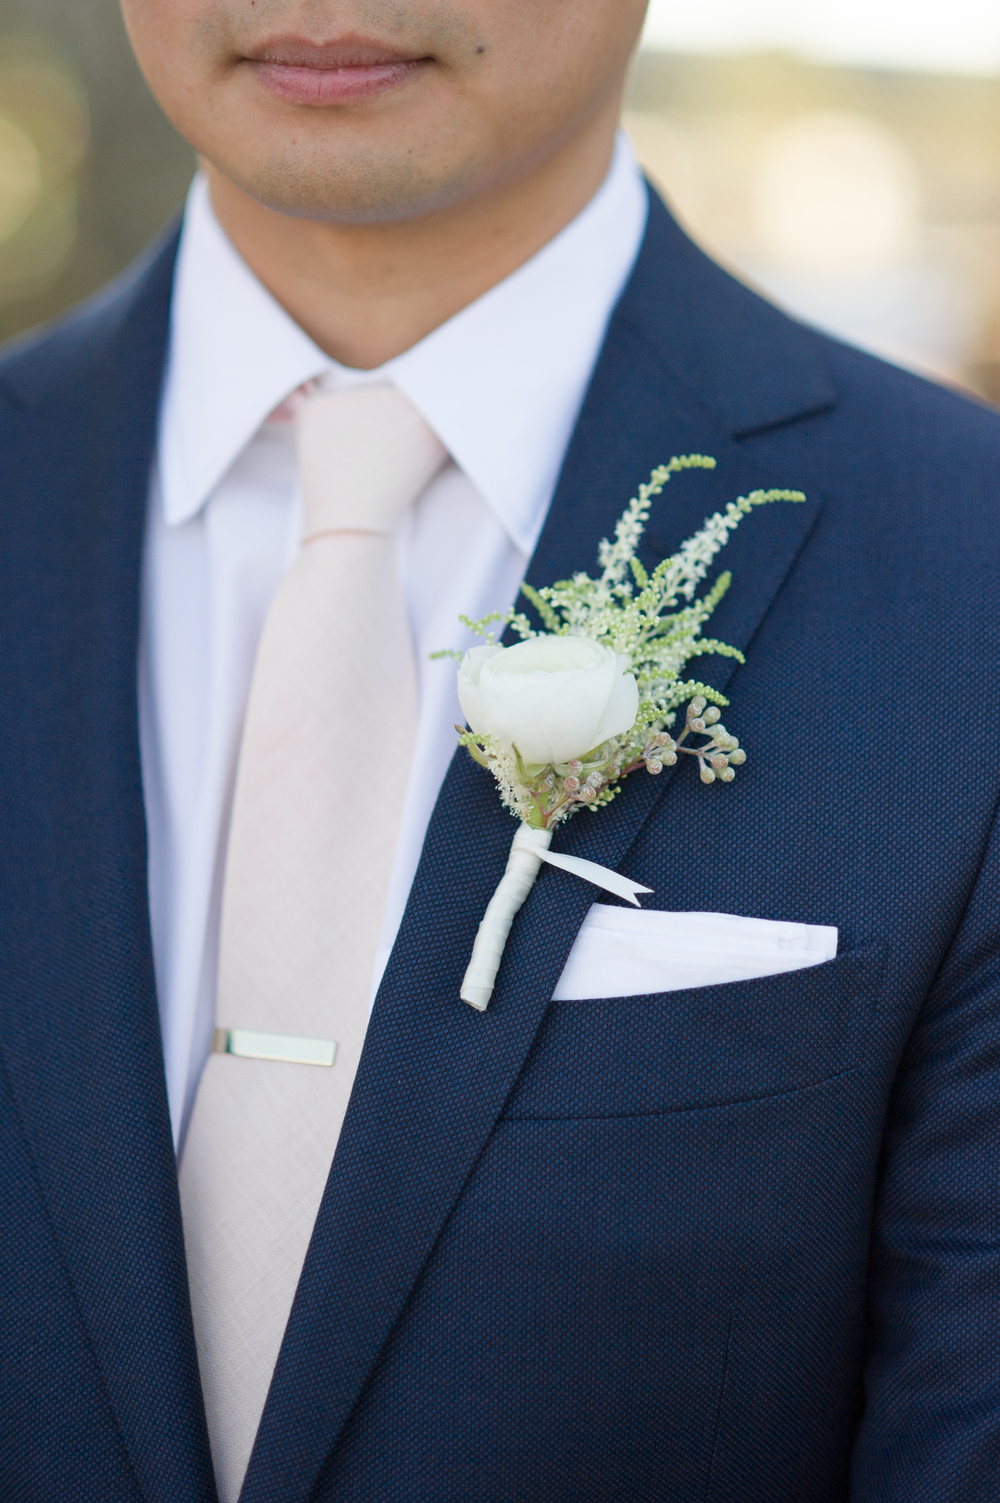 Groom White Rose Boutonnierre Navy Suit Tan Tie